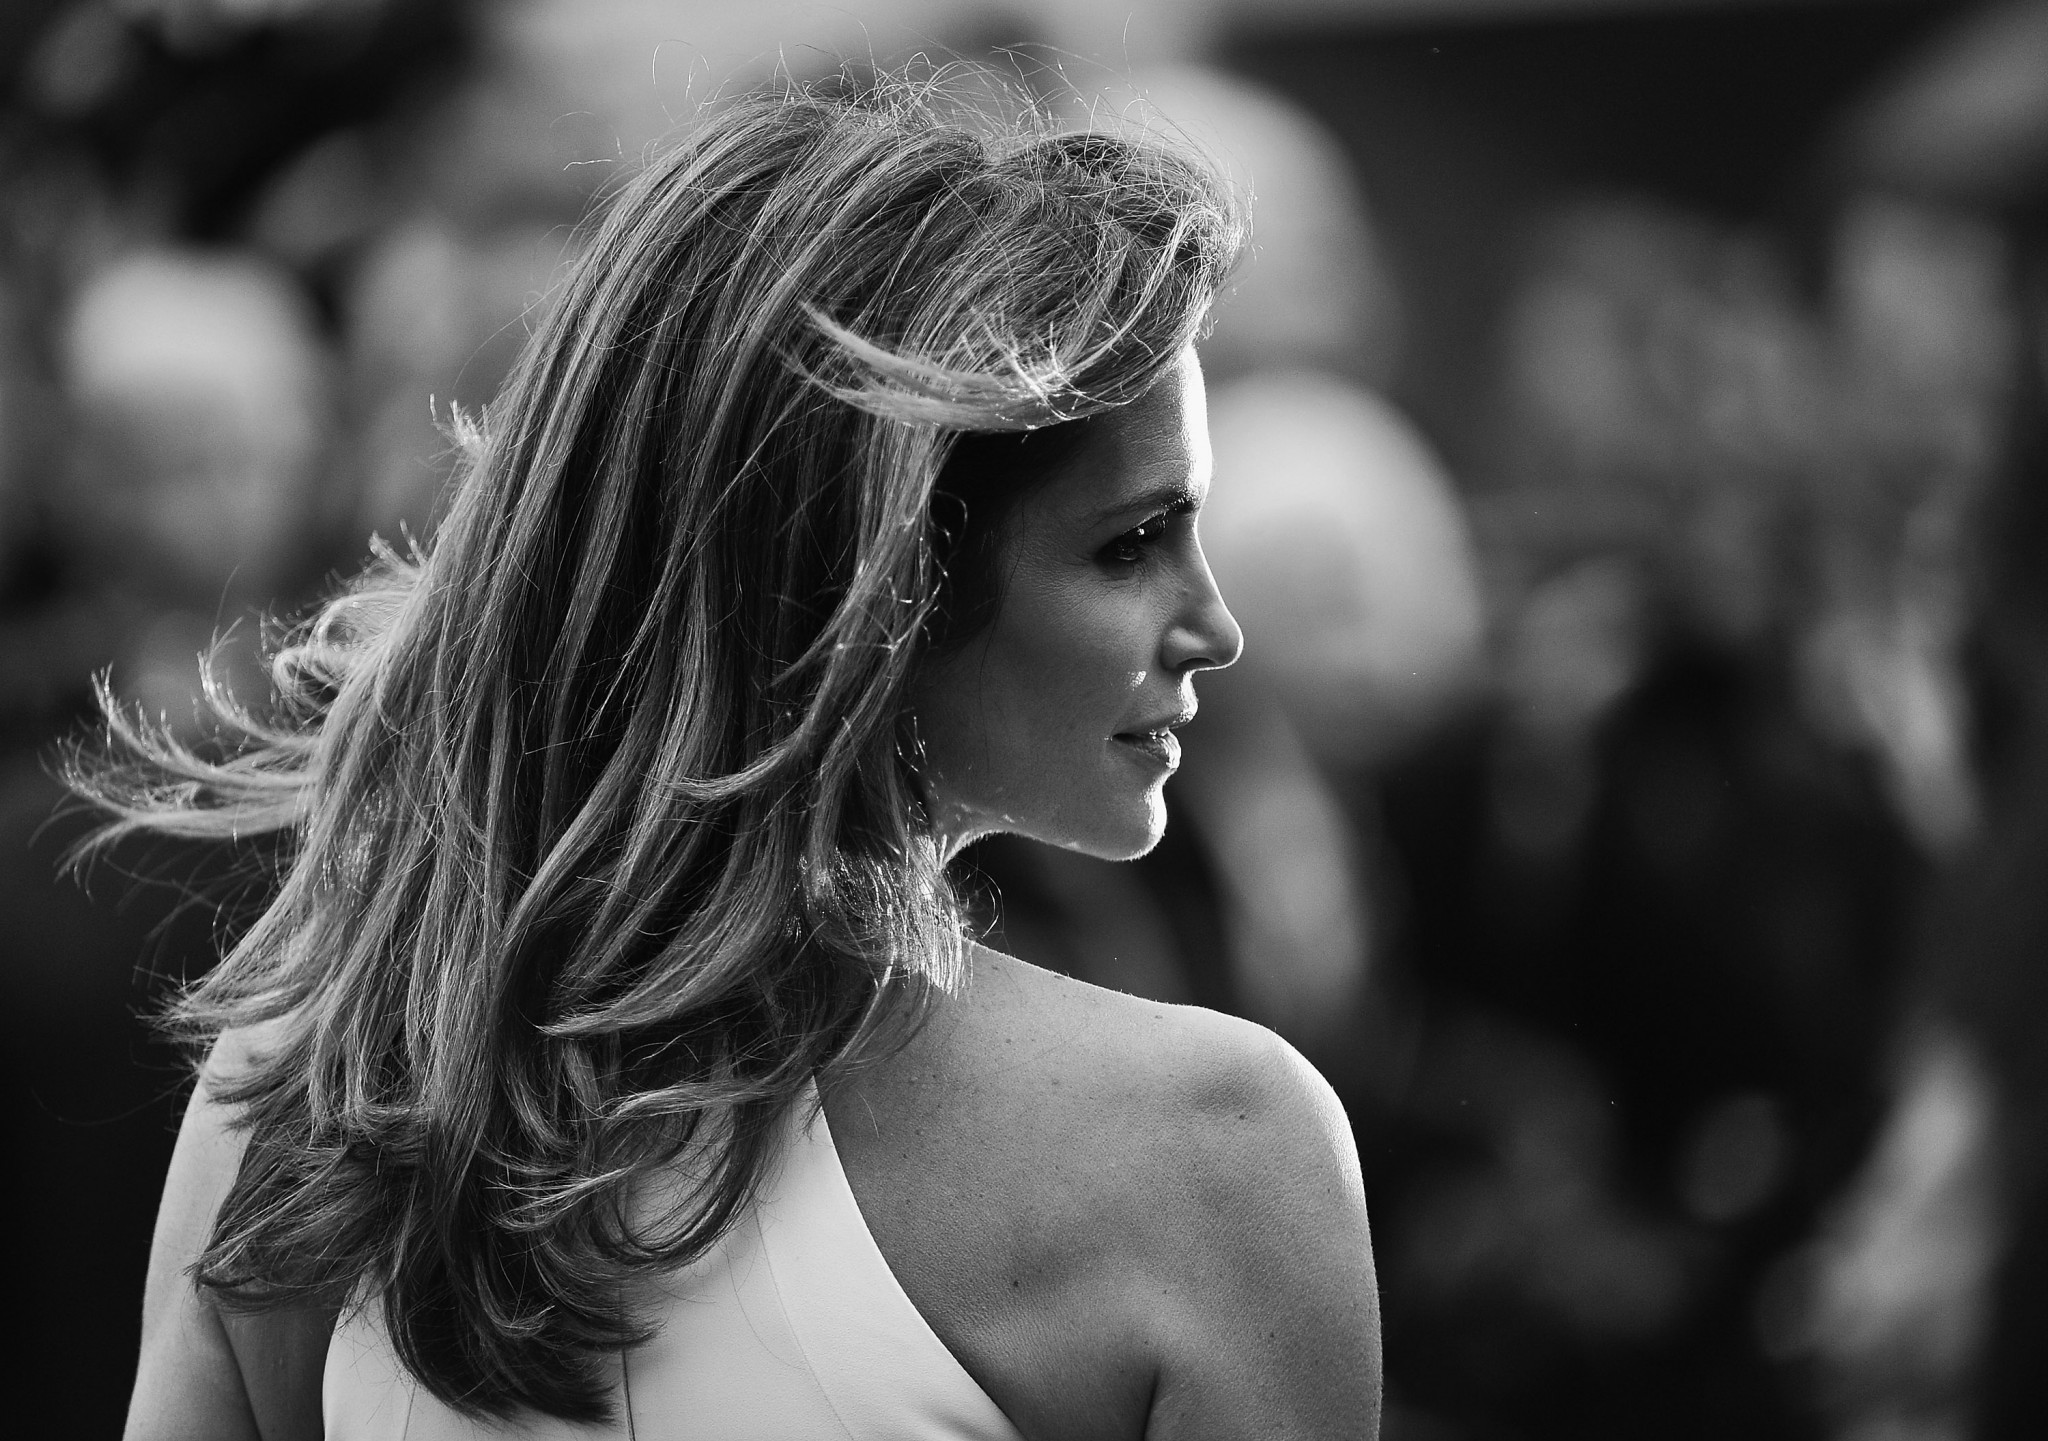 Cindy Crawford as she is now